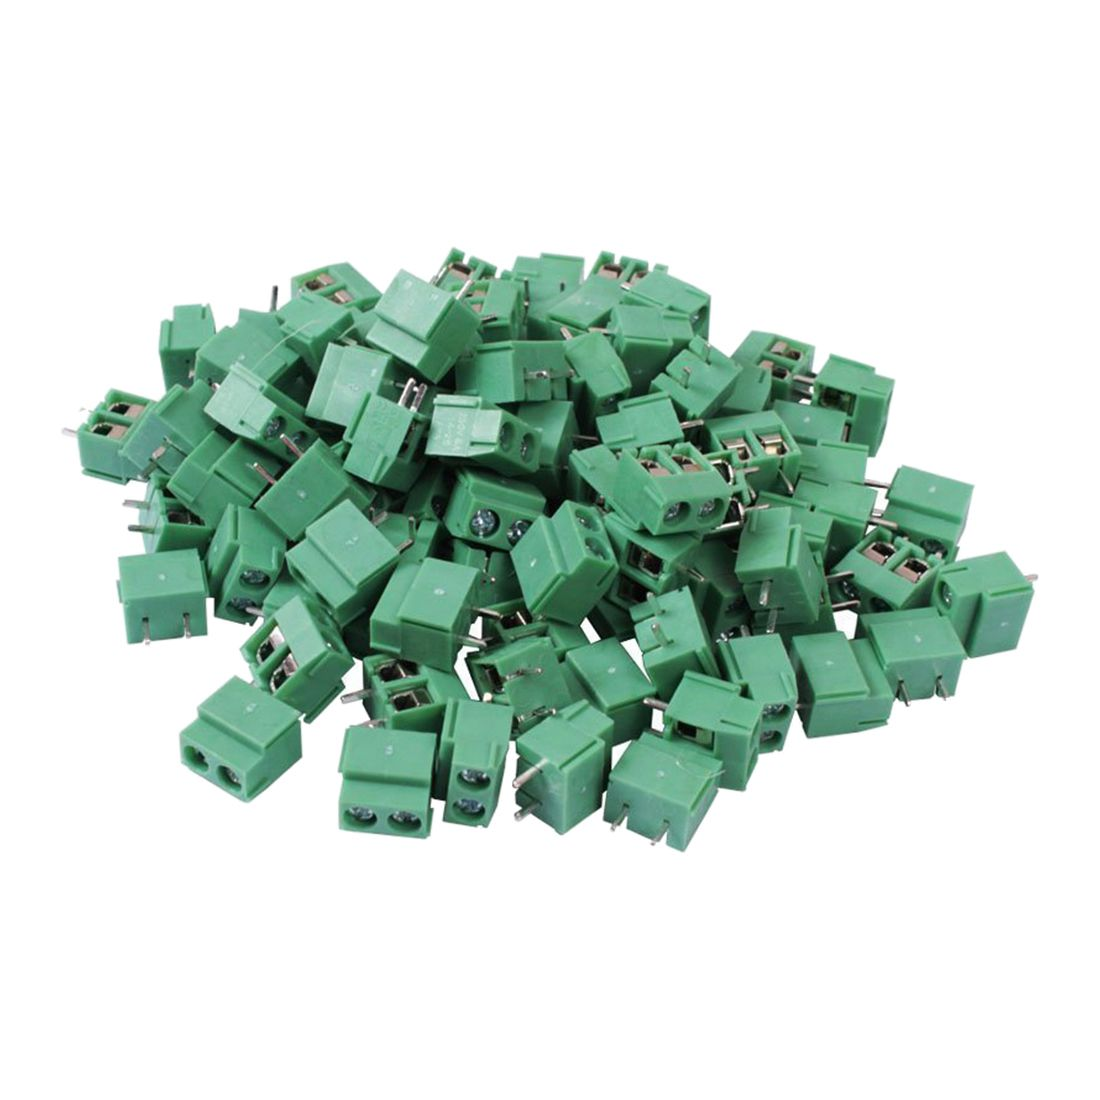 THGS 100PCS 2 Pole 5mm Pitch PCB Mount Screw Terminal Block 8A 250V kf350 2p 3 5mm pitch 7 5mm pcb screw terminal block connectors binding post wire connecting terminals spacing aqjg